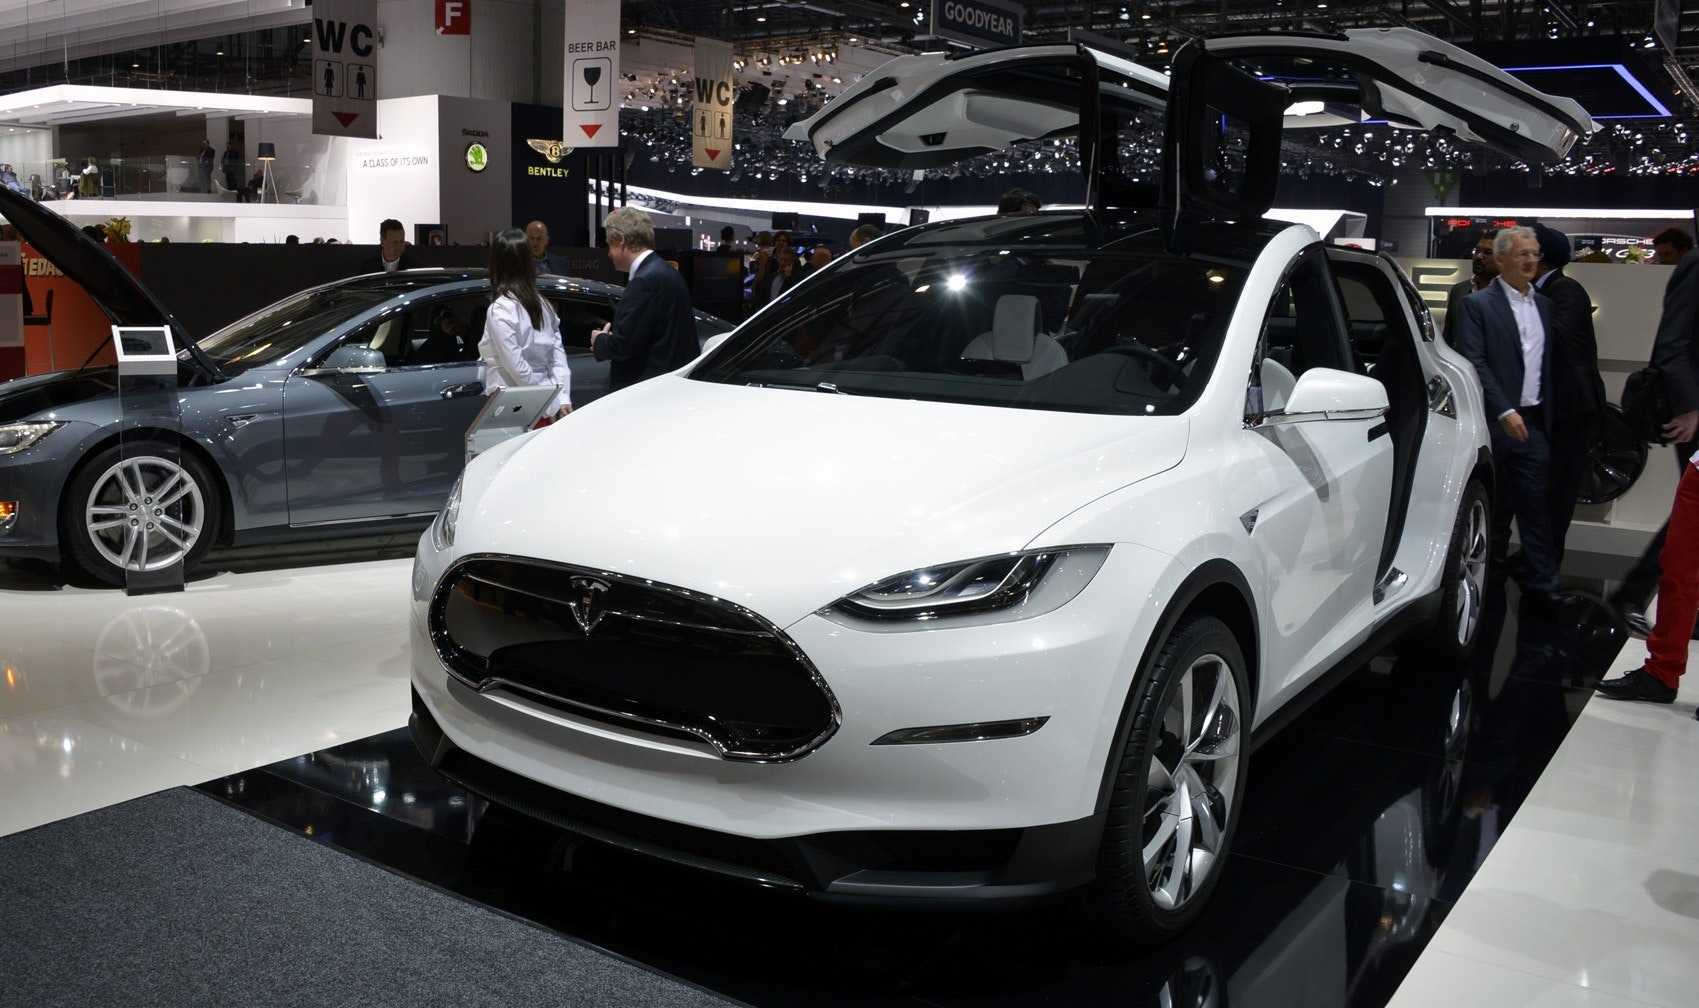 Tesla model x front preview e1425038799782.jpg?ixlib=rb 1.1